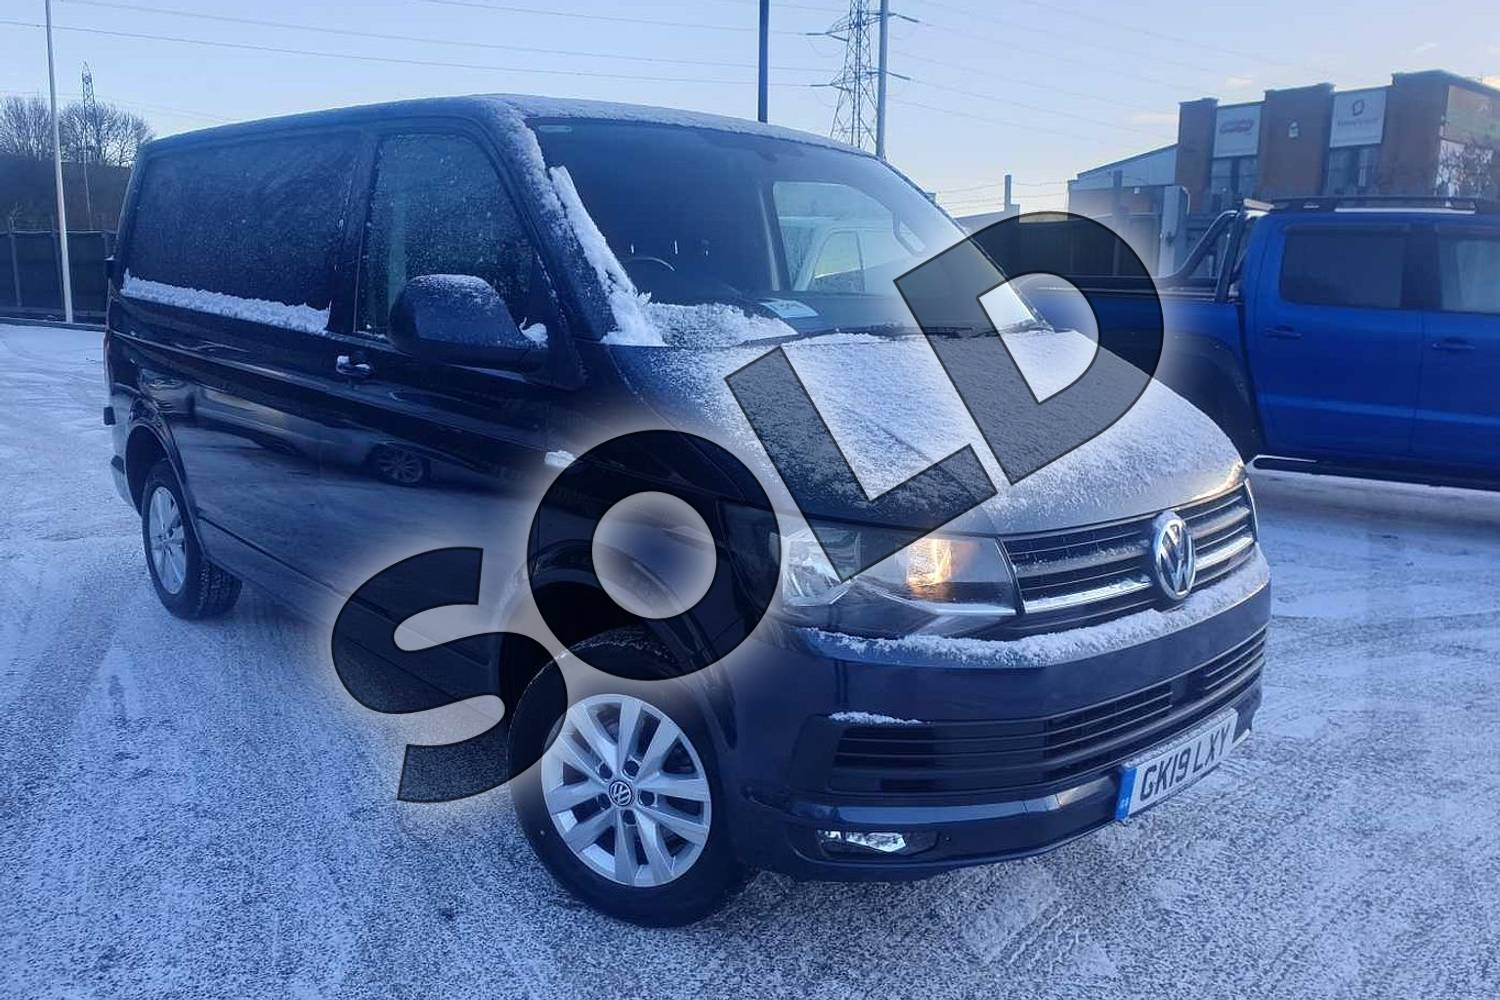 2019 Volkswagen Transporter T28 SWB Diesel 2.0 TDI BMT 150 Highline Van DSG in Blue at Listers Volkswagen Van Centre Coventry